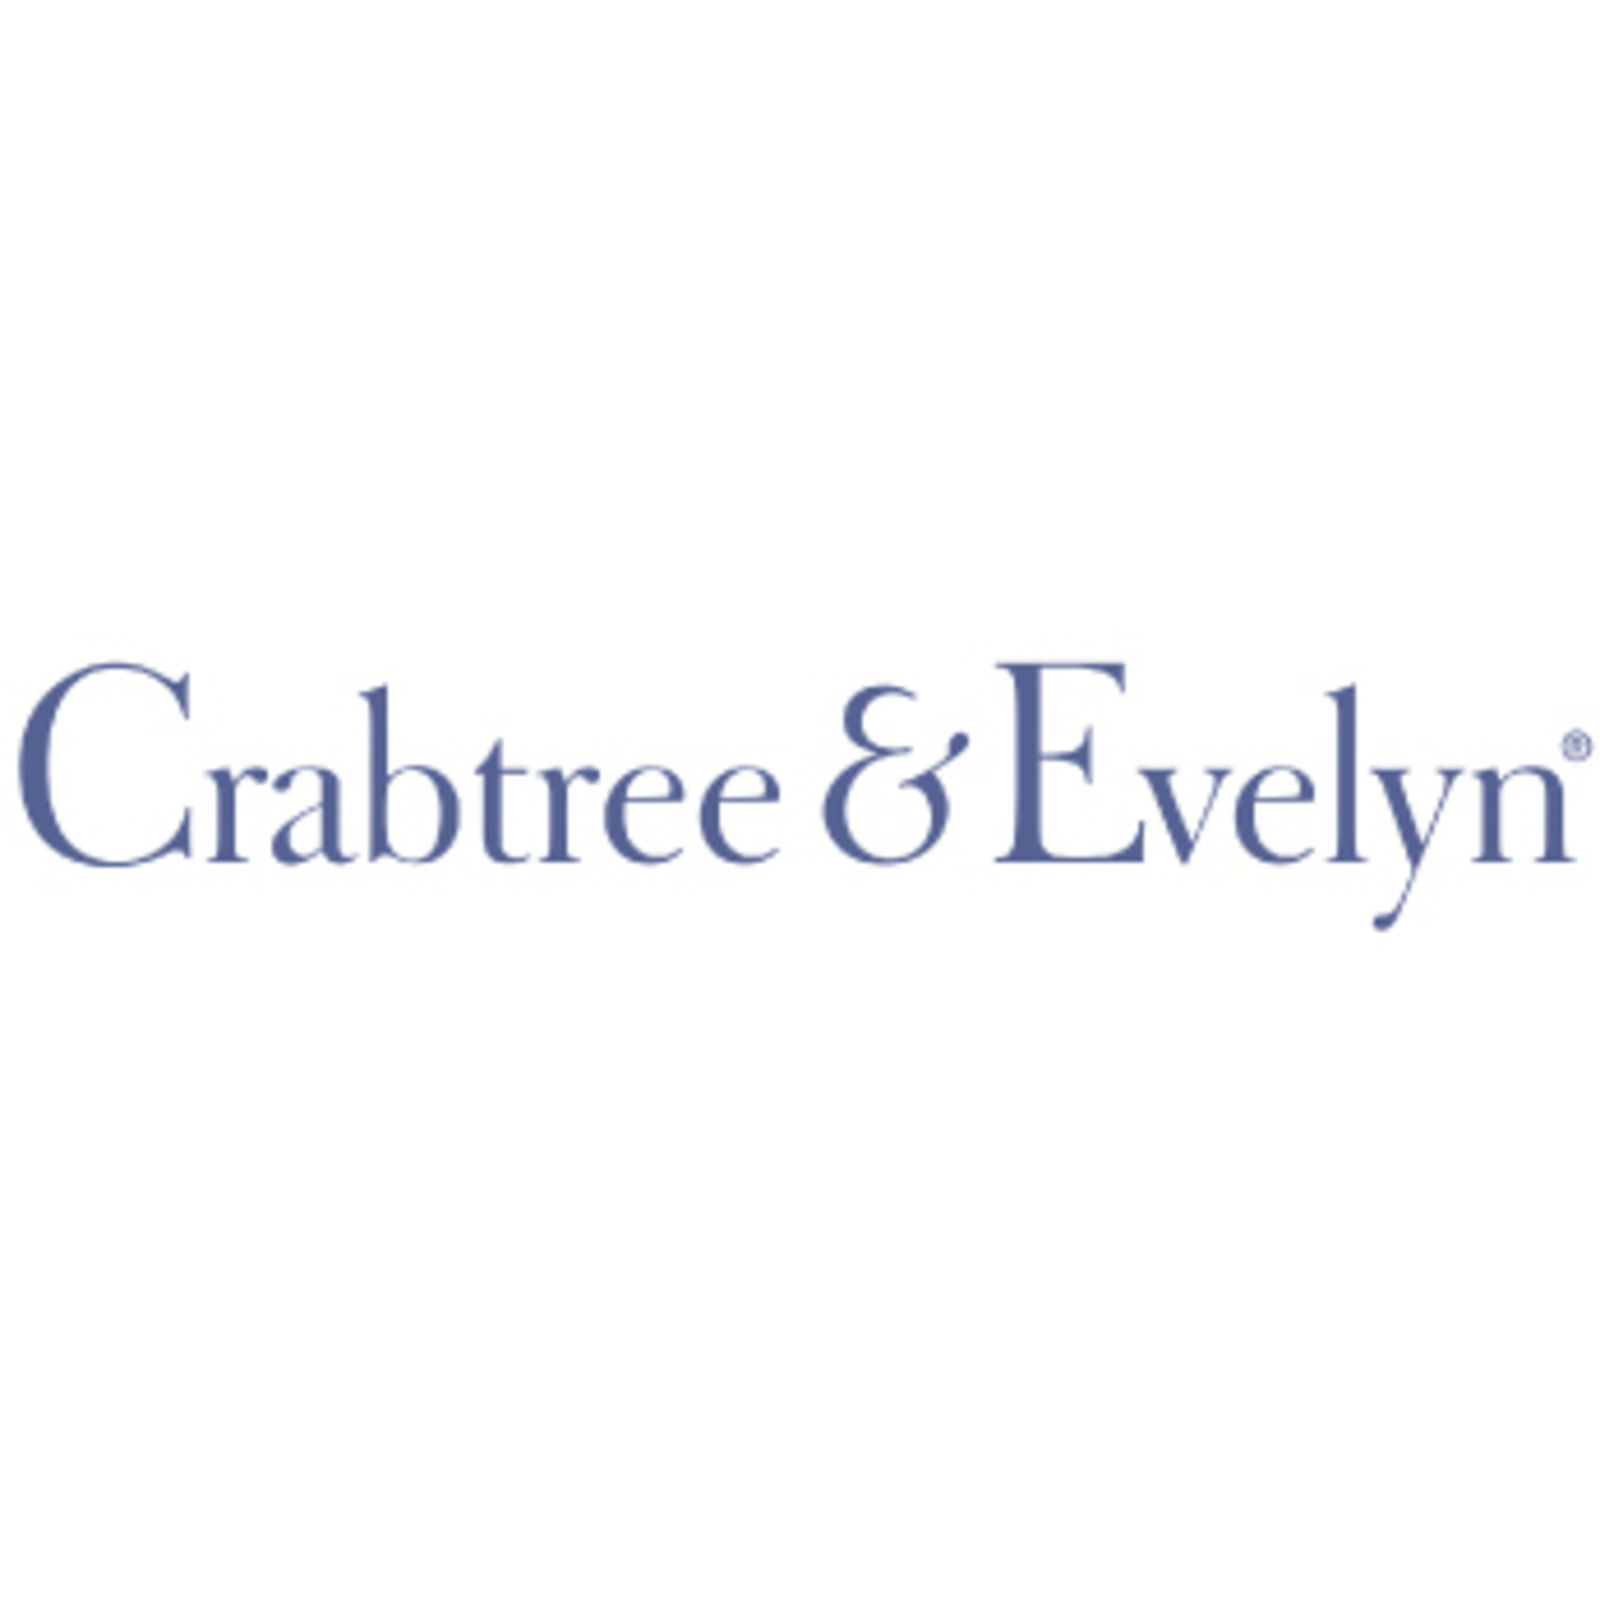 CRABTREE & EVELYN (Image 1)